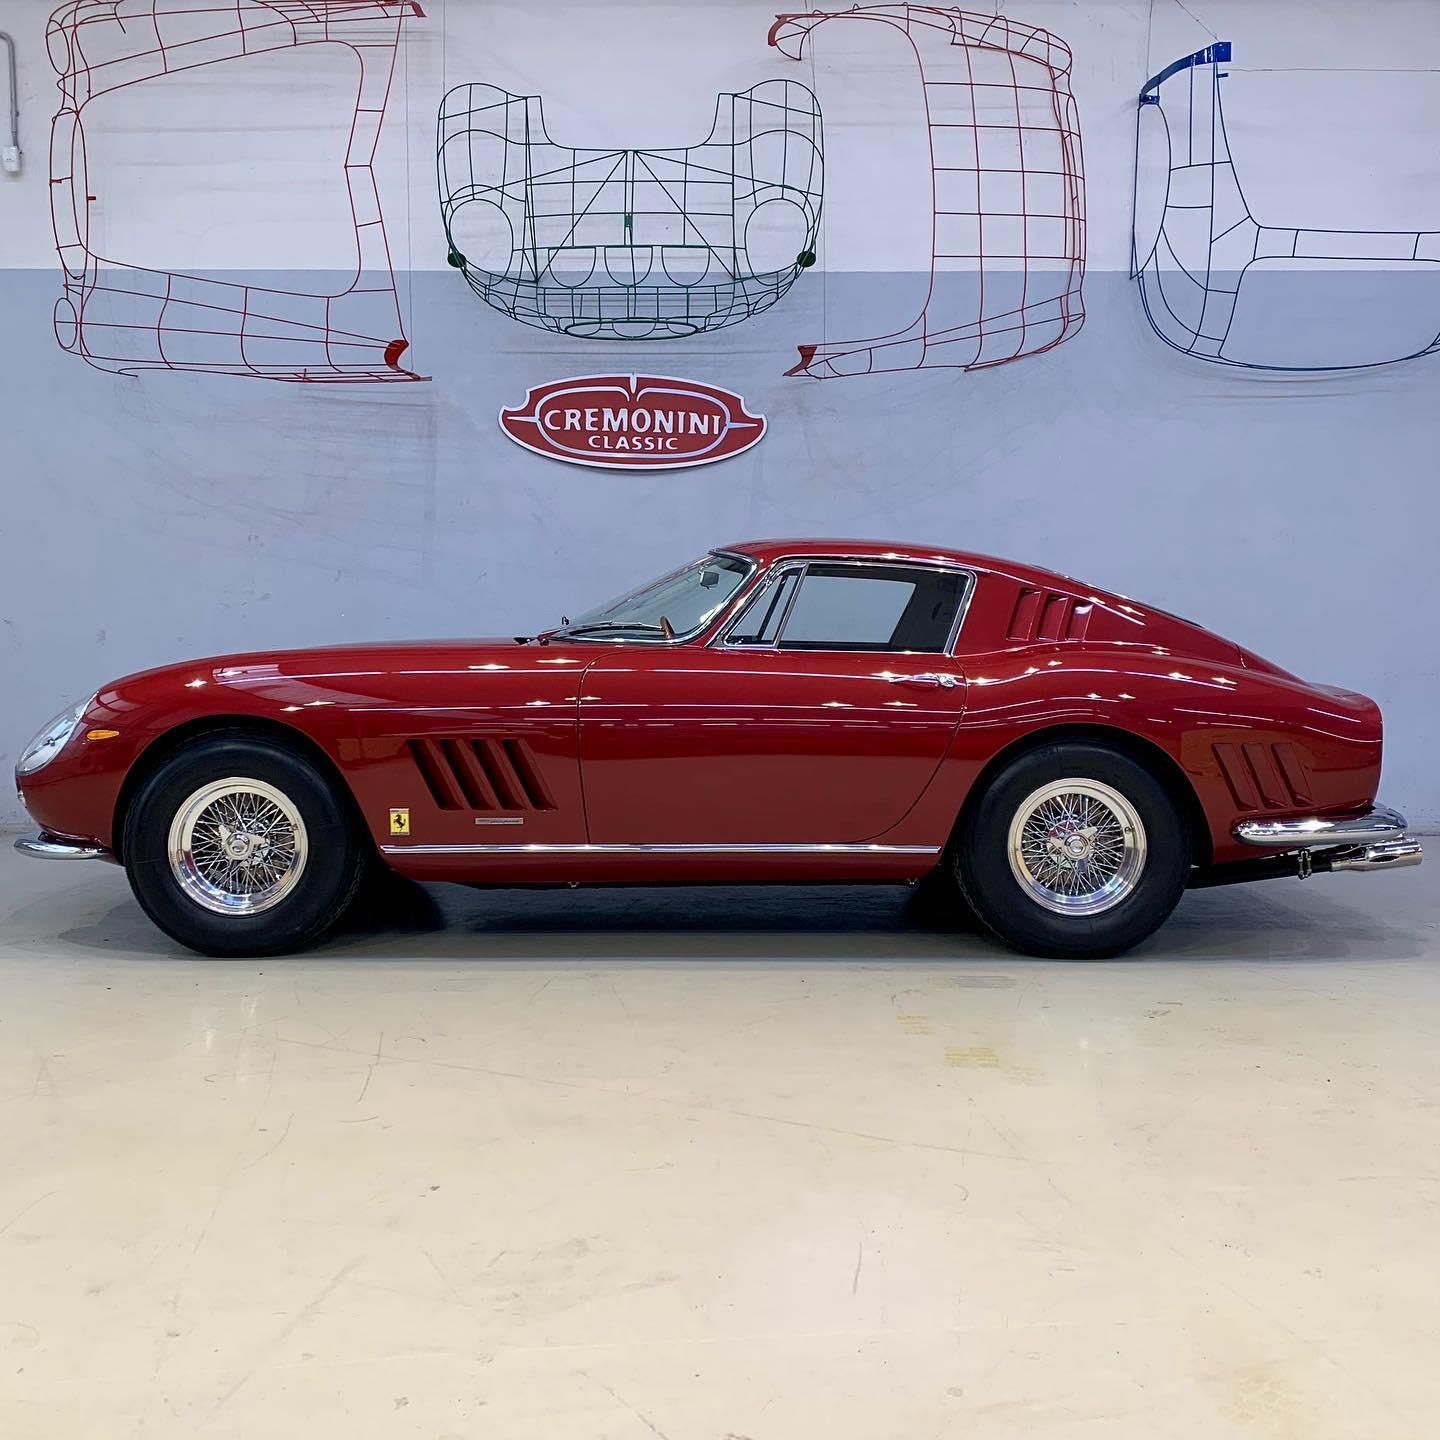 Optimism is the way we've chosen to ring in the new year. There is nothing more rewarding than sending back home a Ferrari 275GTB Competizione Rosso Rubino to the UK to get ready for the new challenges of 2021. Stay safe, stay positive & stay healthy @tomhartleyjunior @gigi_elettrautoclassiche @ferrariservice_bonini #ferrari275gtbc #ferrari #italianstyle #purepassion #classiccars